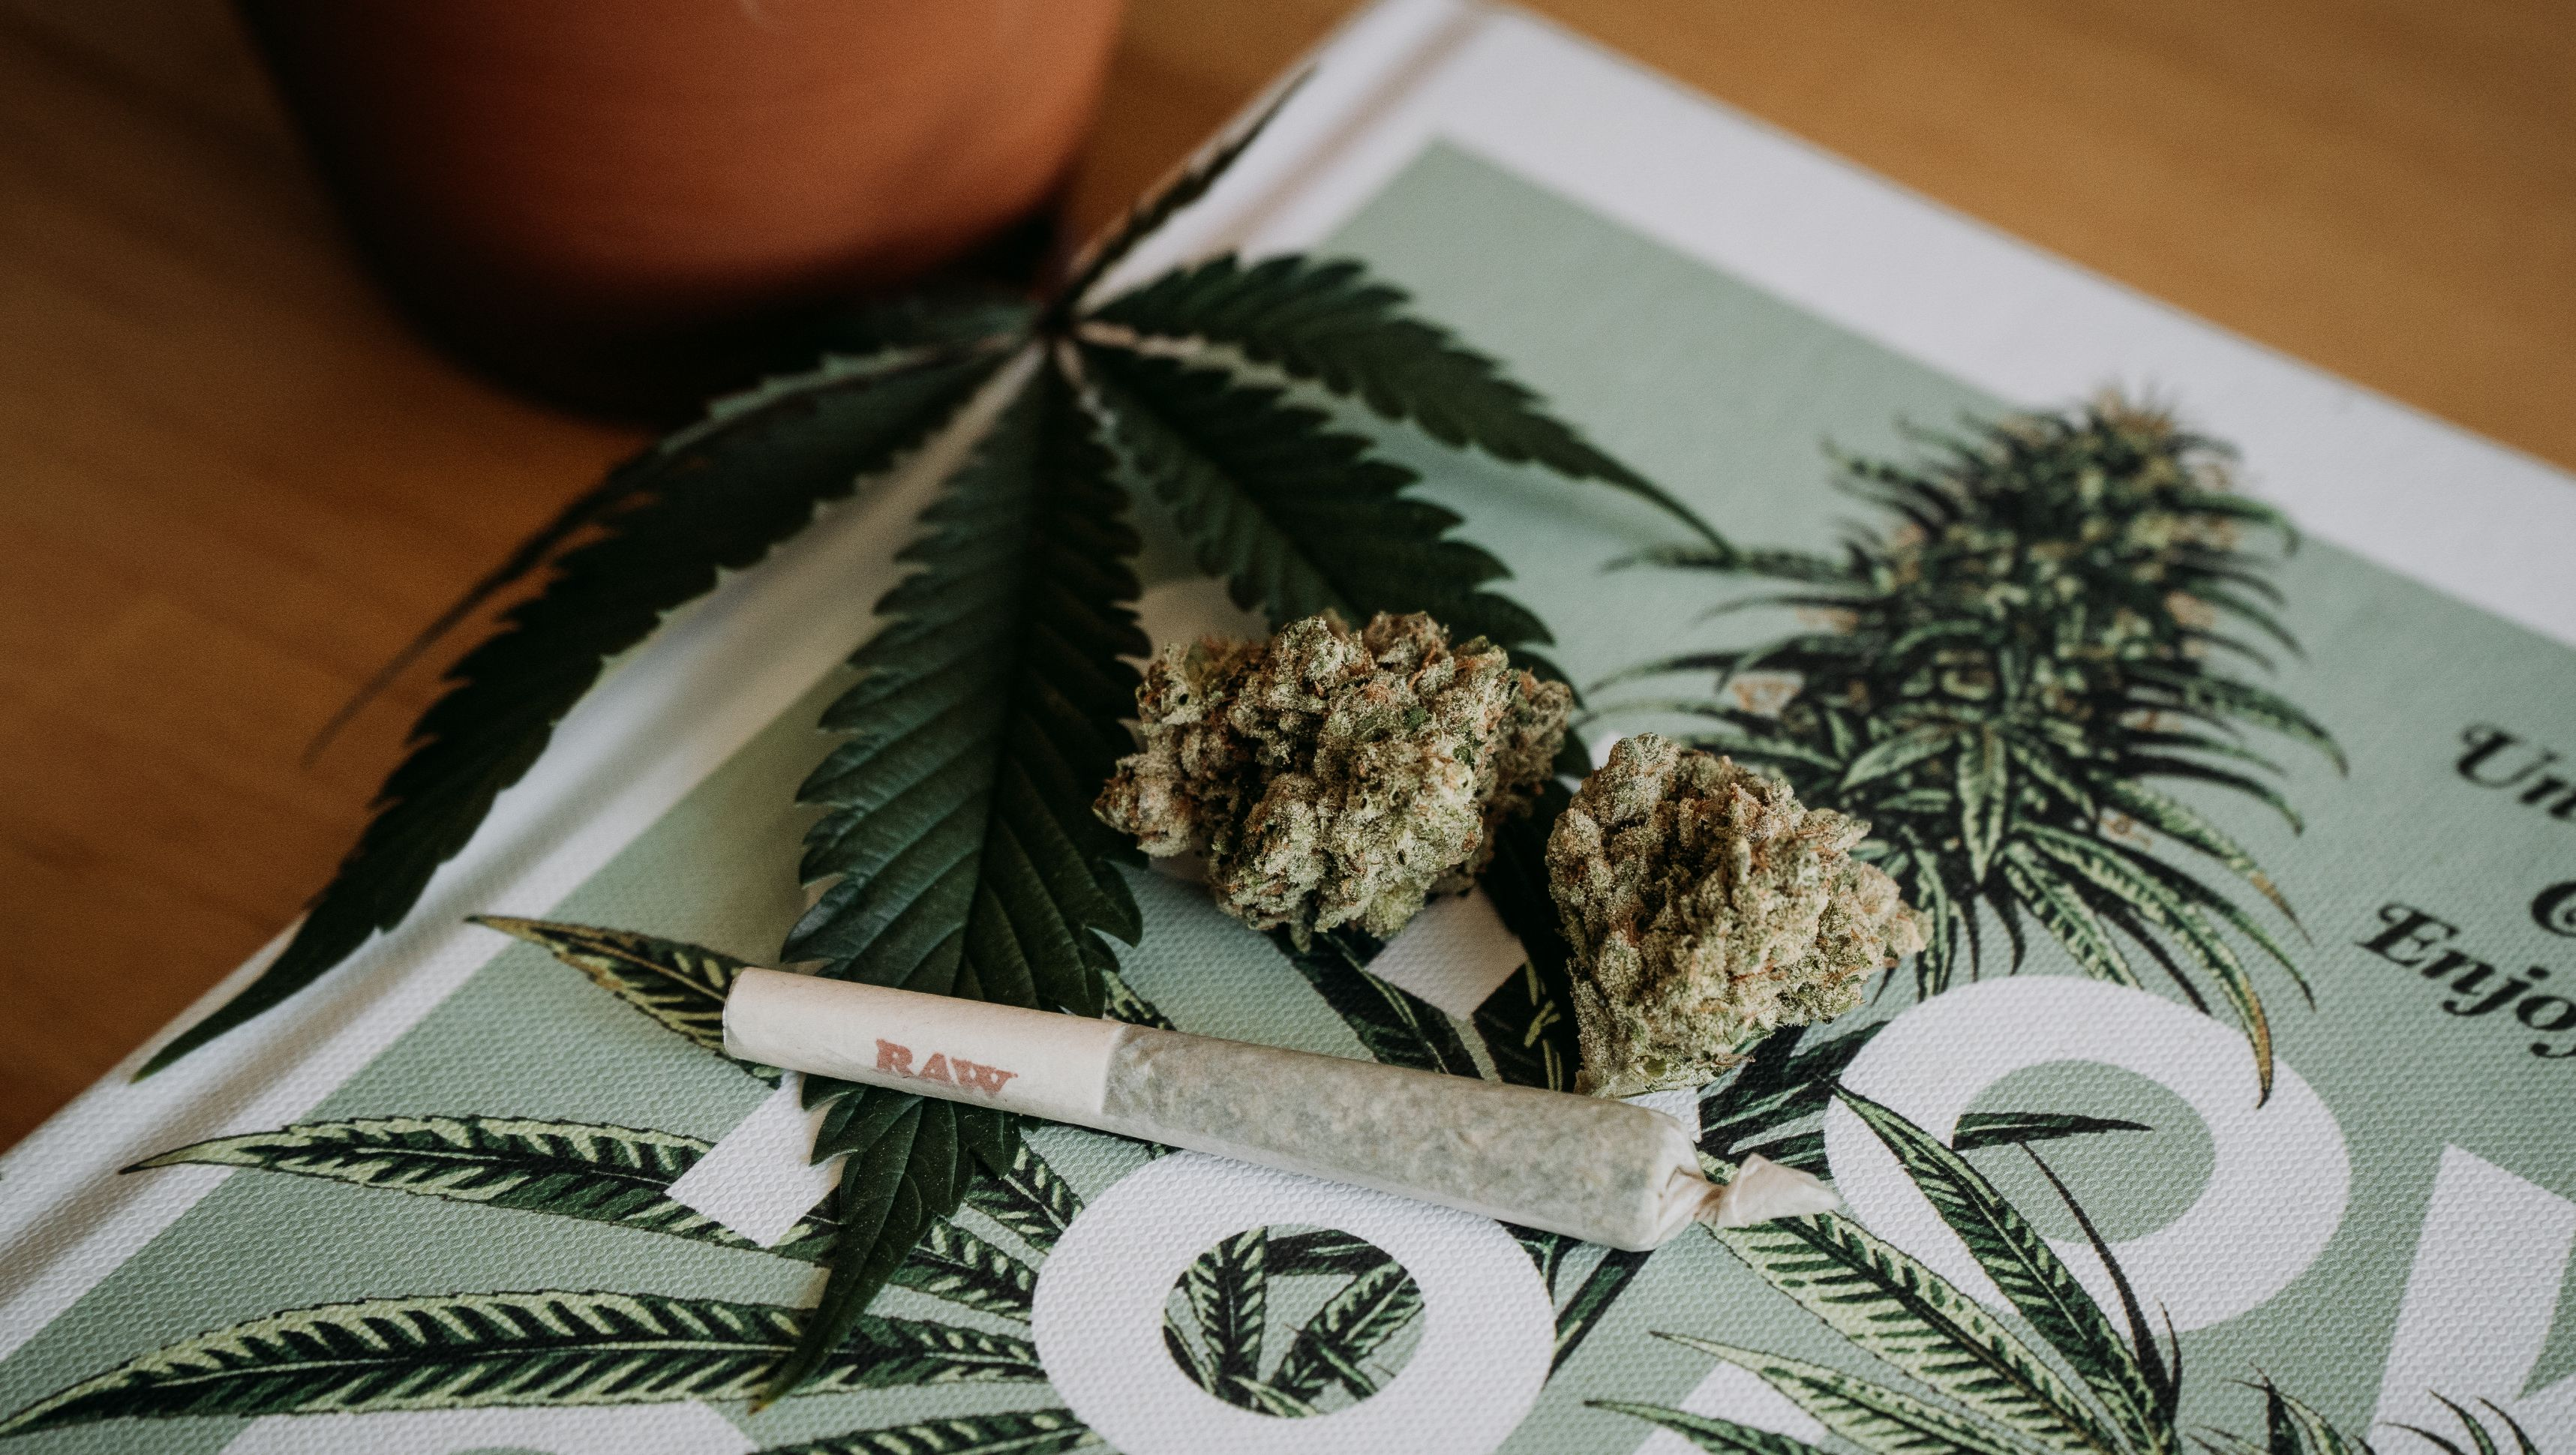 Marijuana leaf and joint on a table.